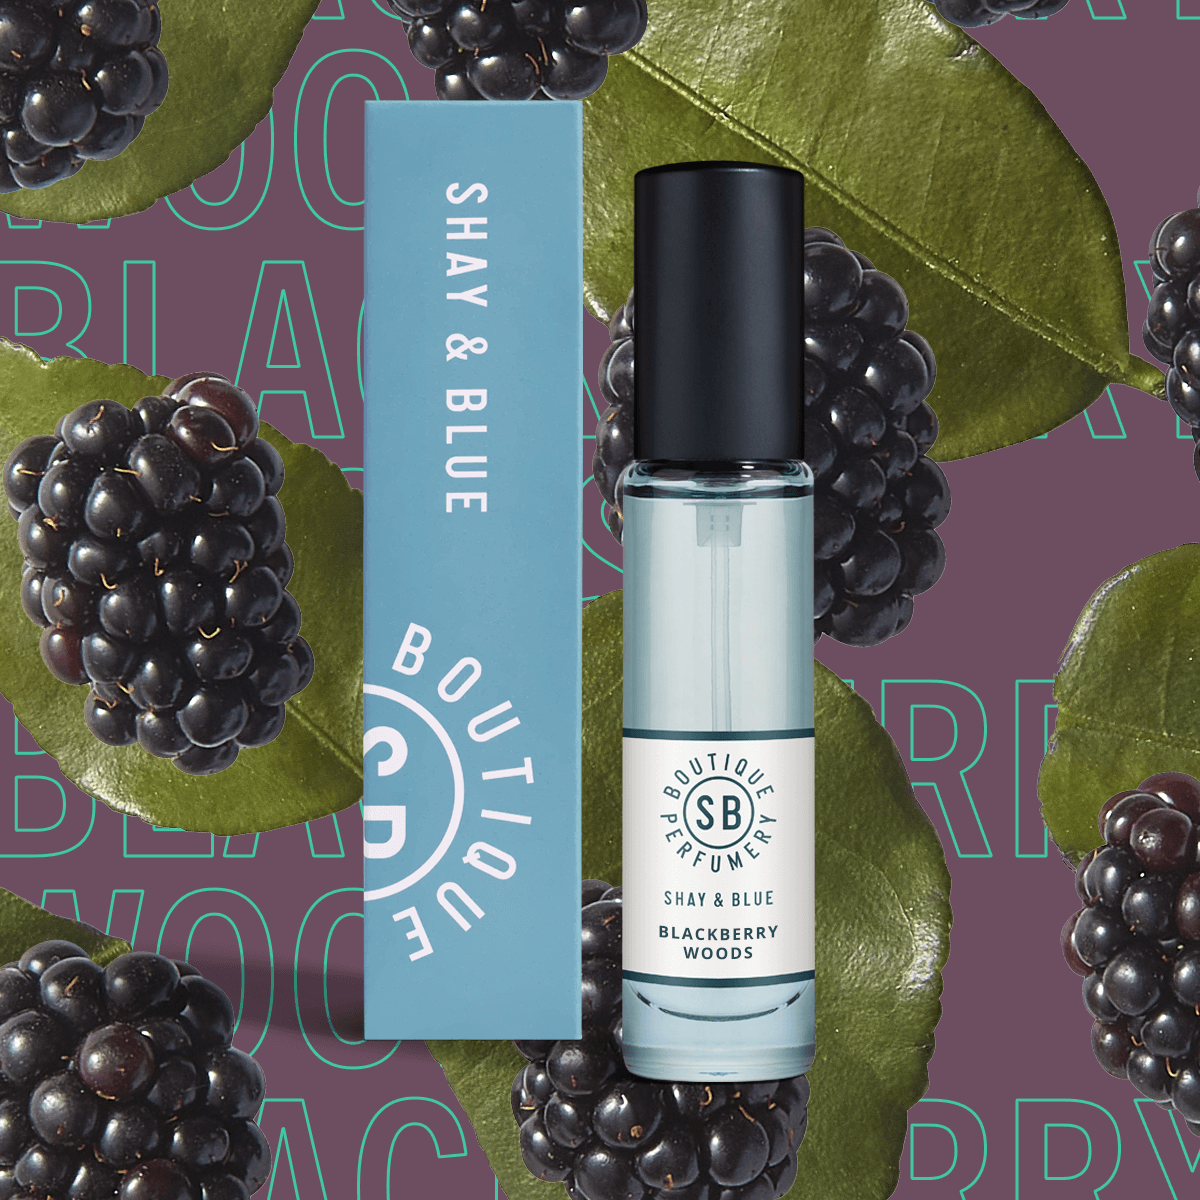 Blackberry Woods Fragrance 10ml | Glossy berry juice with punk-sharp citrus. | Clean All Gender Fragrance | Shay & Blue